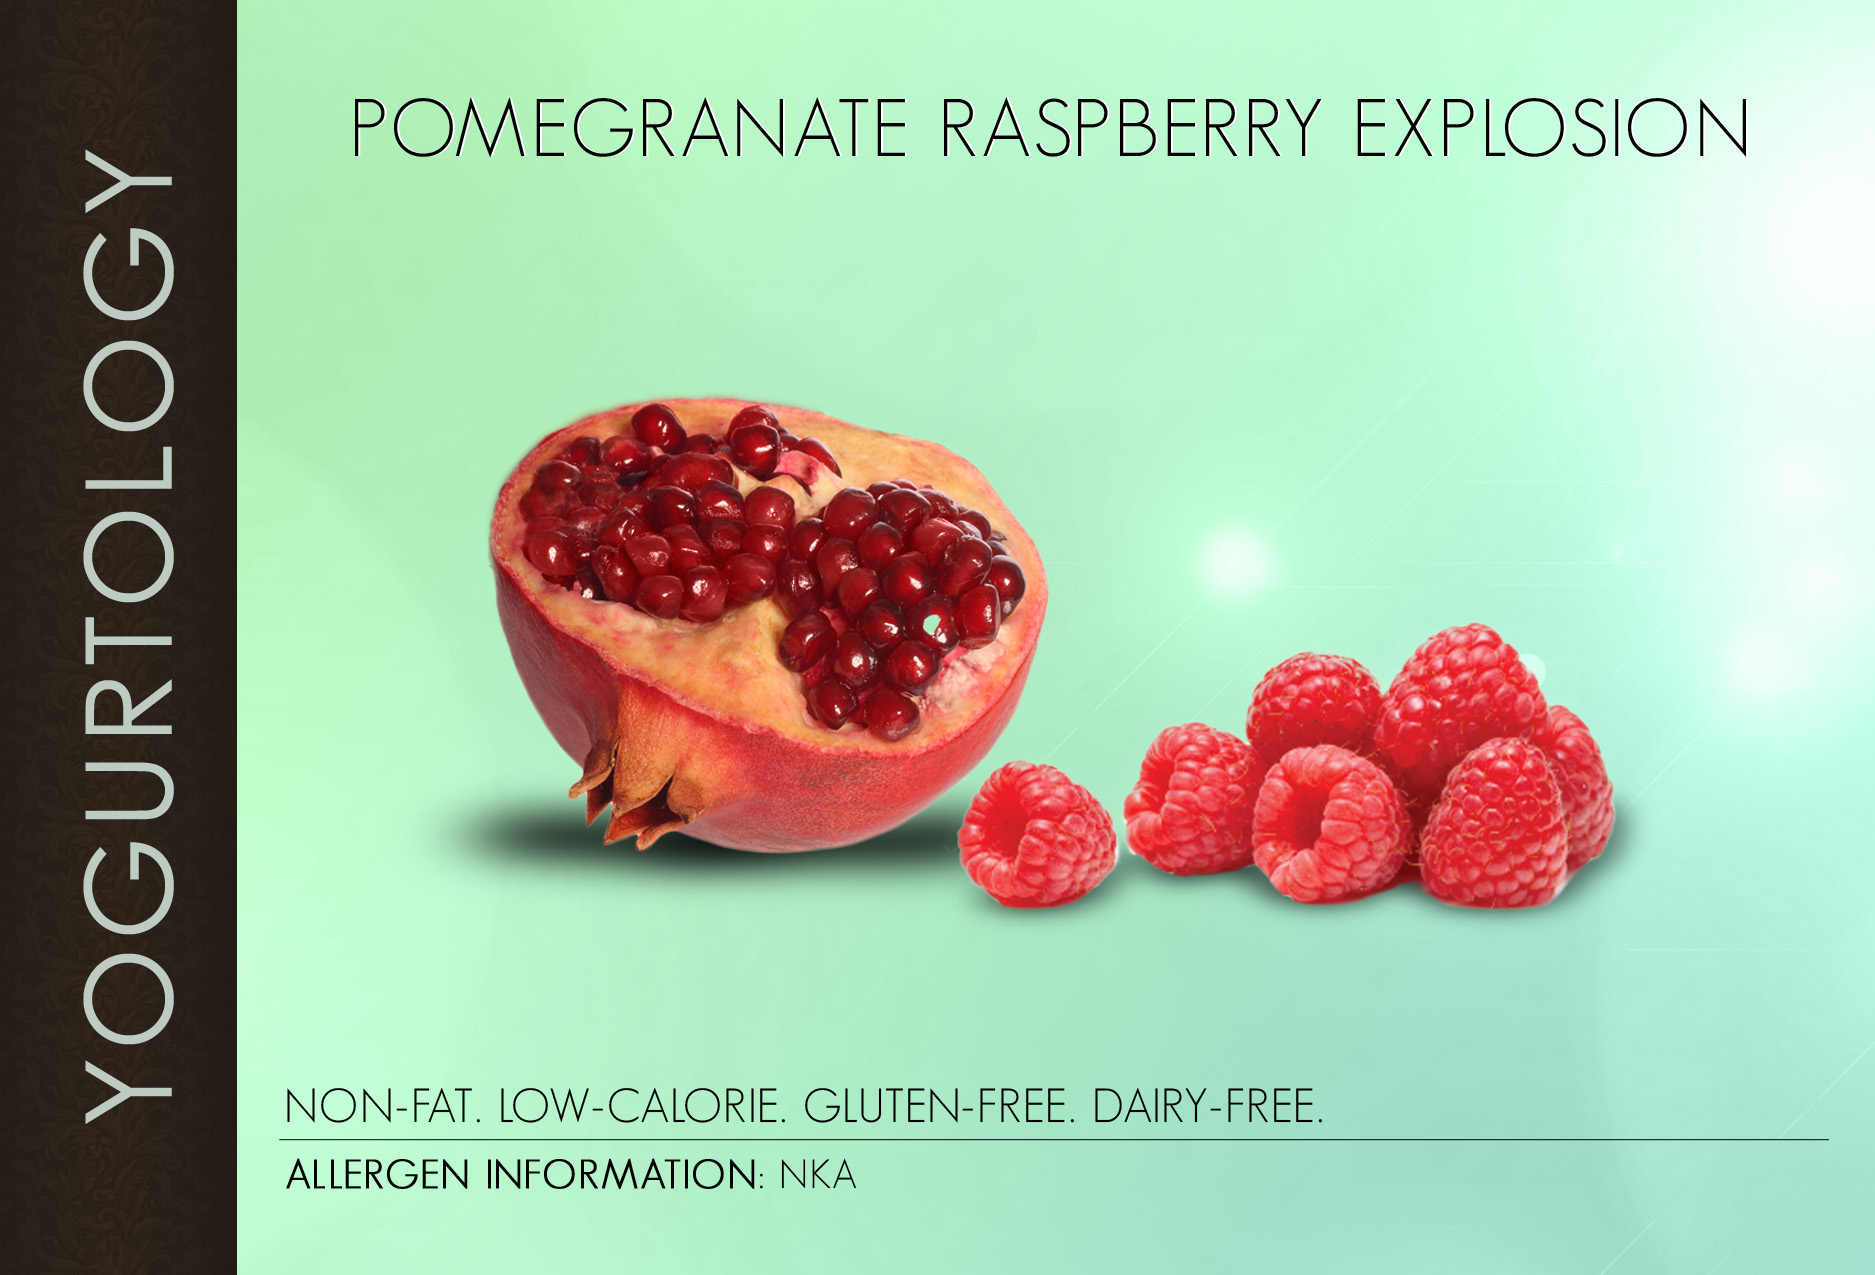 Pomegranate Raspberry Explosion